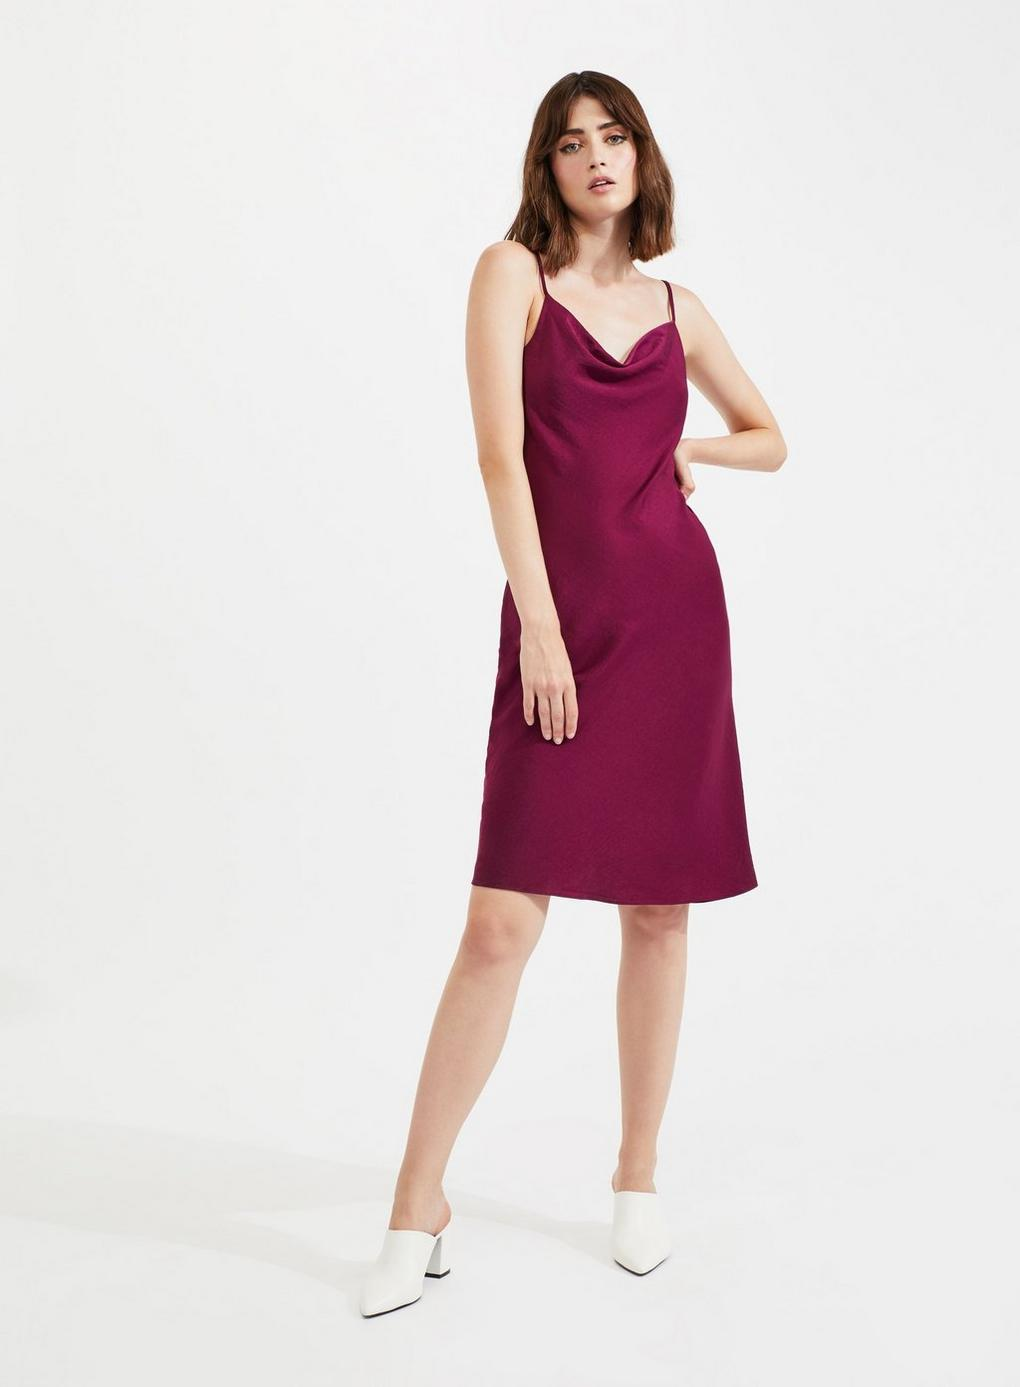 c526f4f401f Gallery. Previously sold at  Miss Selfridge · Women s Sweetheart Neck  Dresses ...